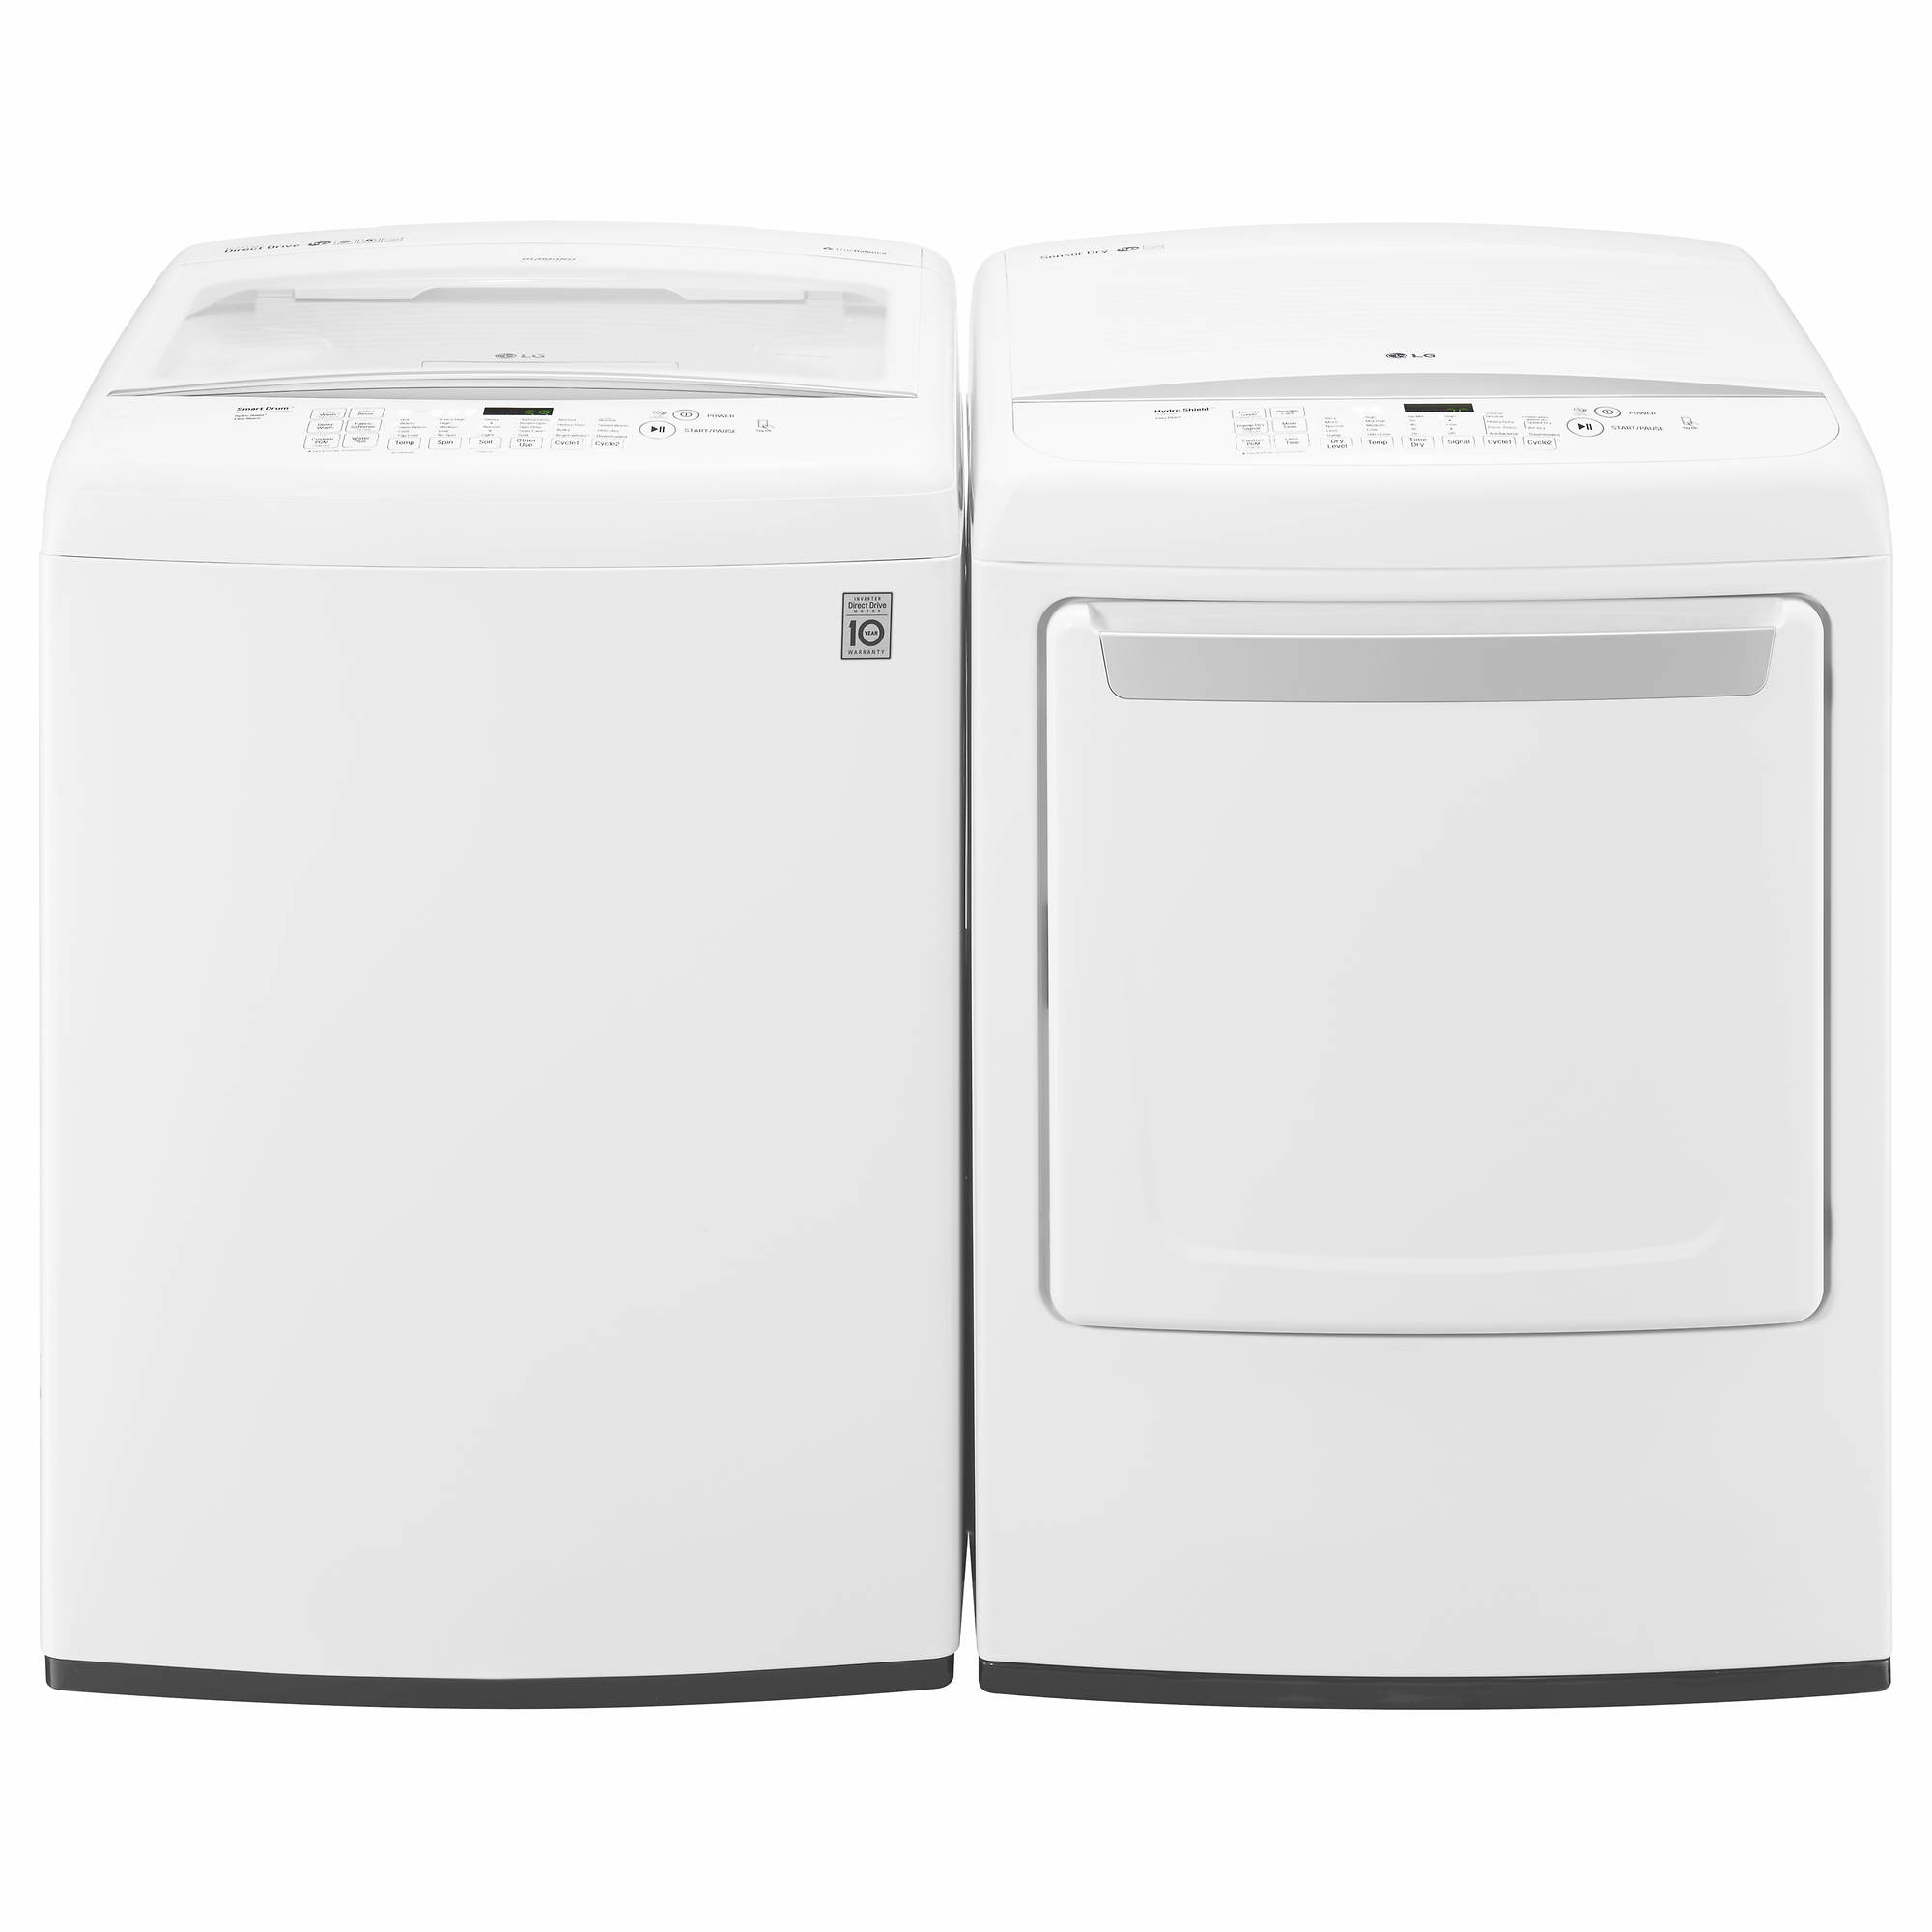 LG Top-Load TurboWash Washer and Sensor Dry Electric Dryer - White